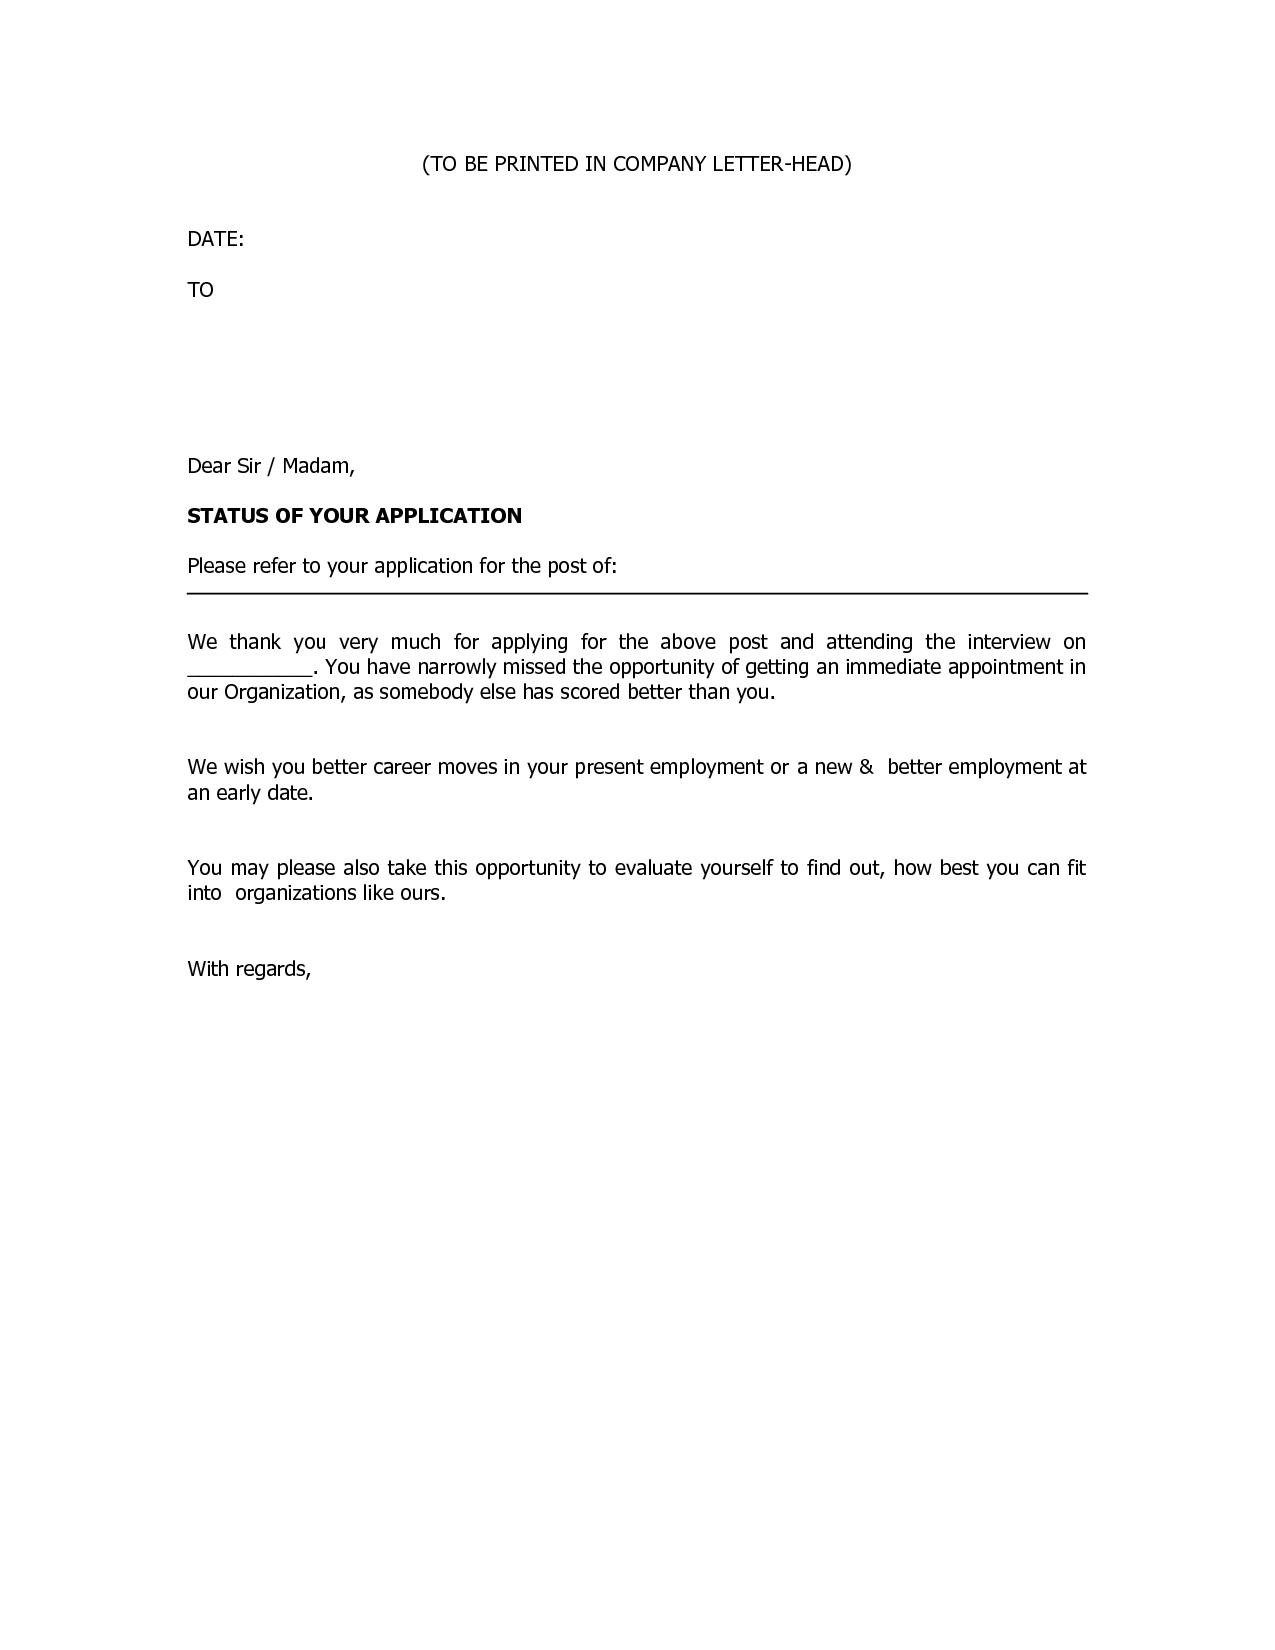 Business rejection letter rejection letters are usually addressed business rejection letter rejection letters are usually addressed to applicants who are not qualified for the job we offered how to write rejection altavistaventures Images